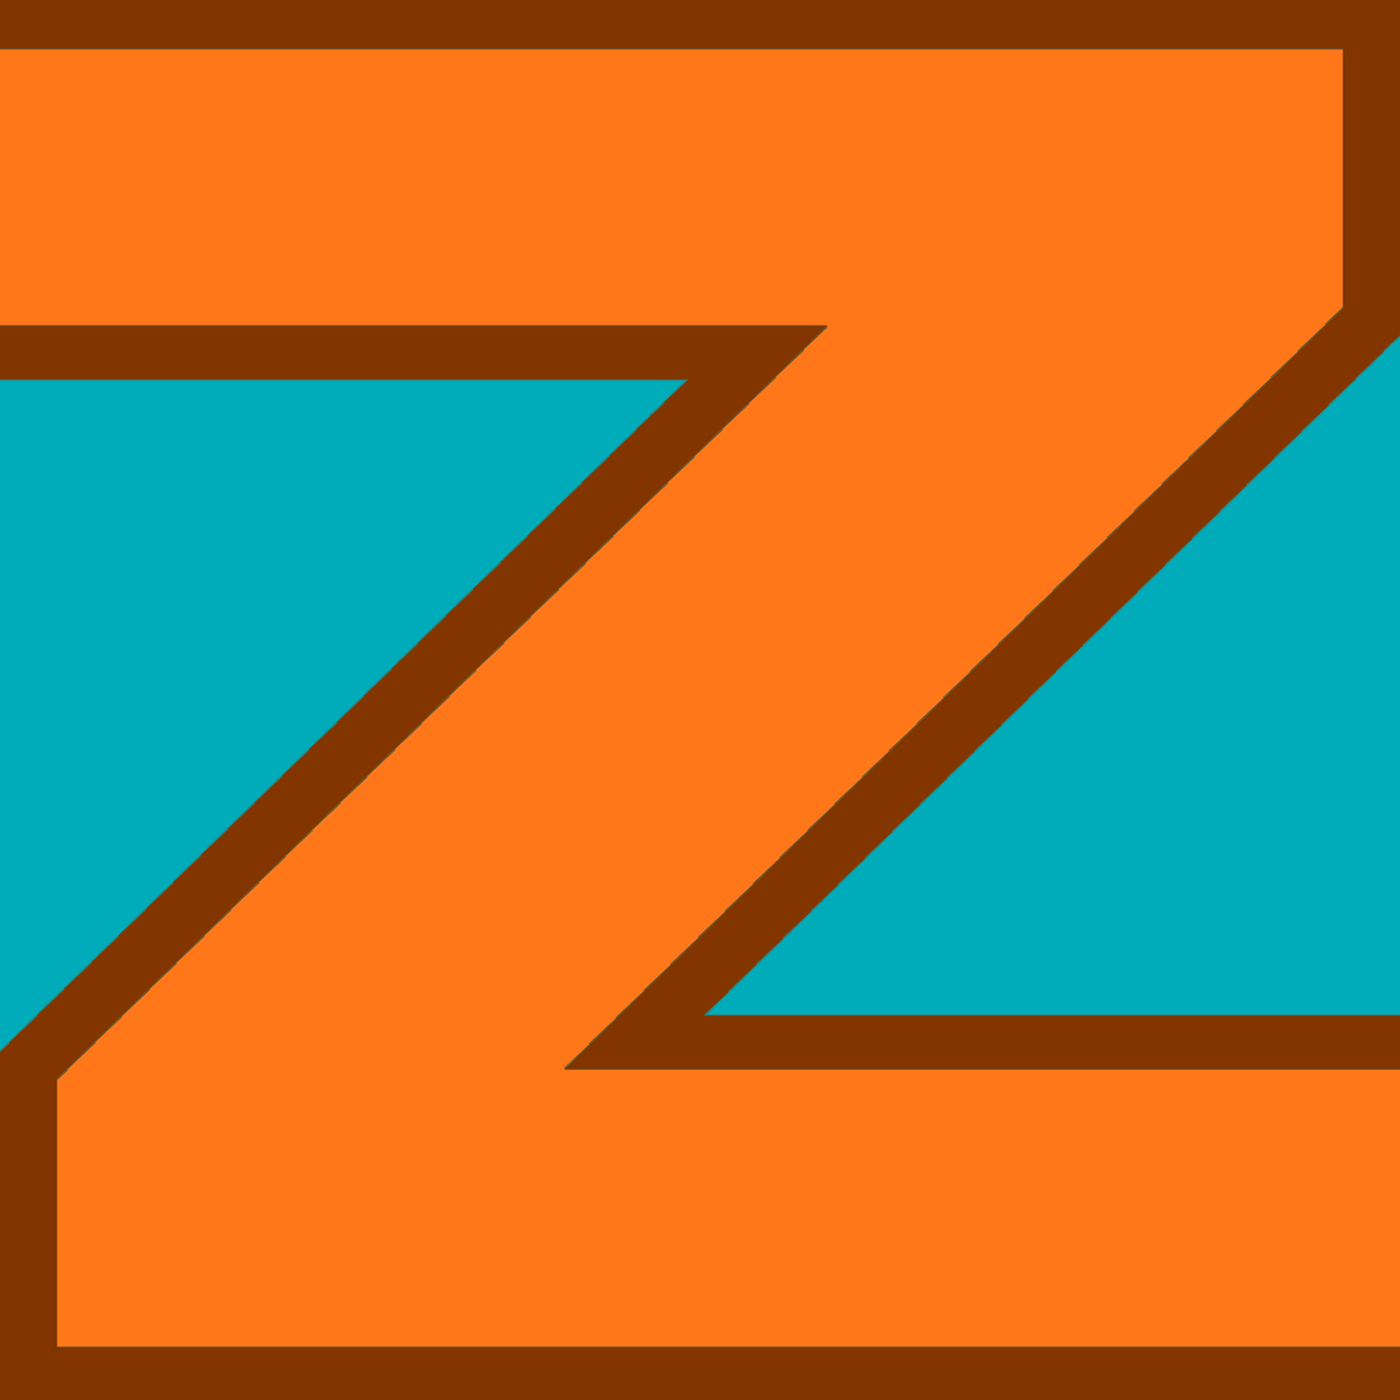 Zeugma podcast logo, an orange letter Z on blue background